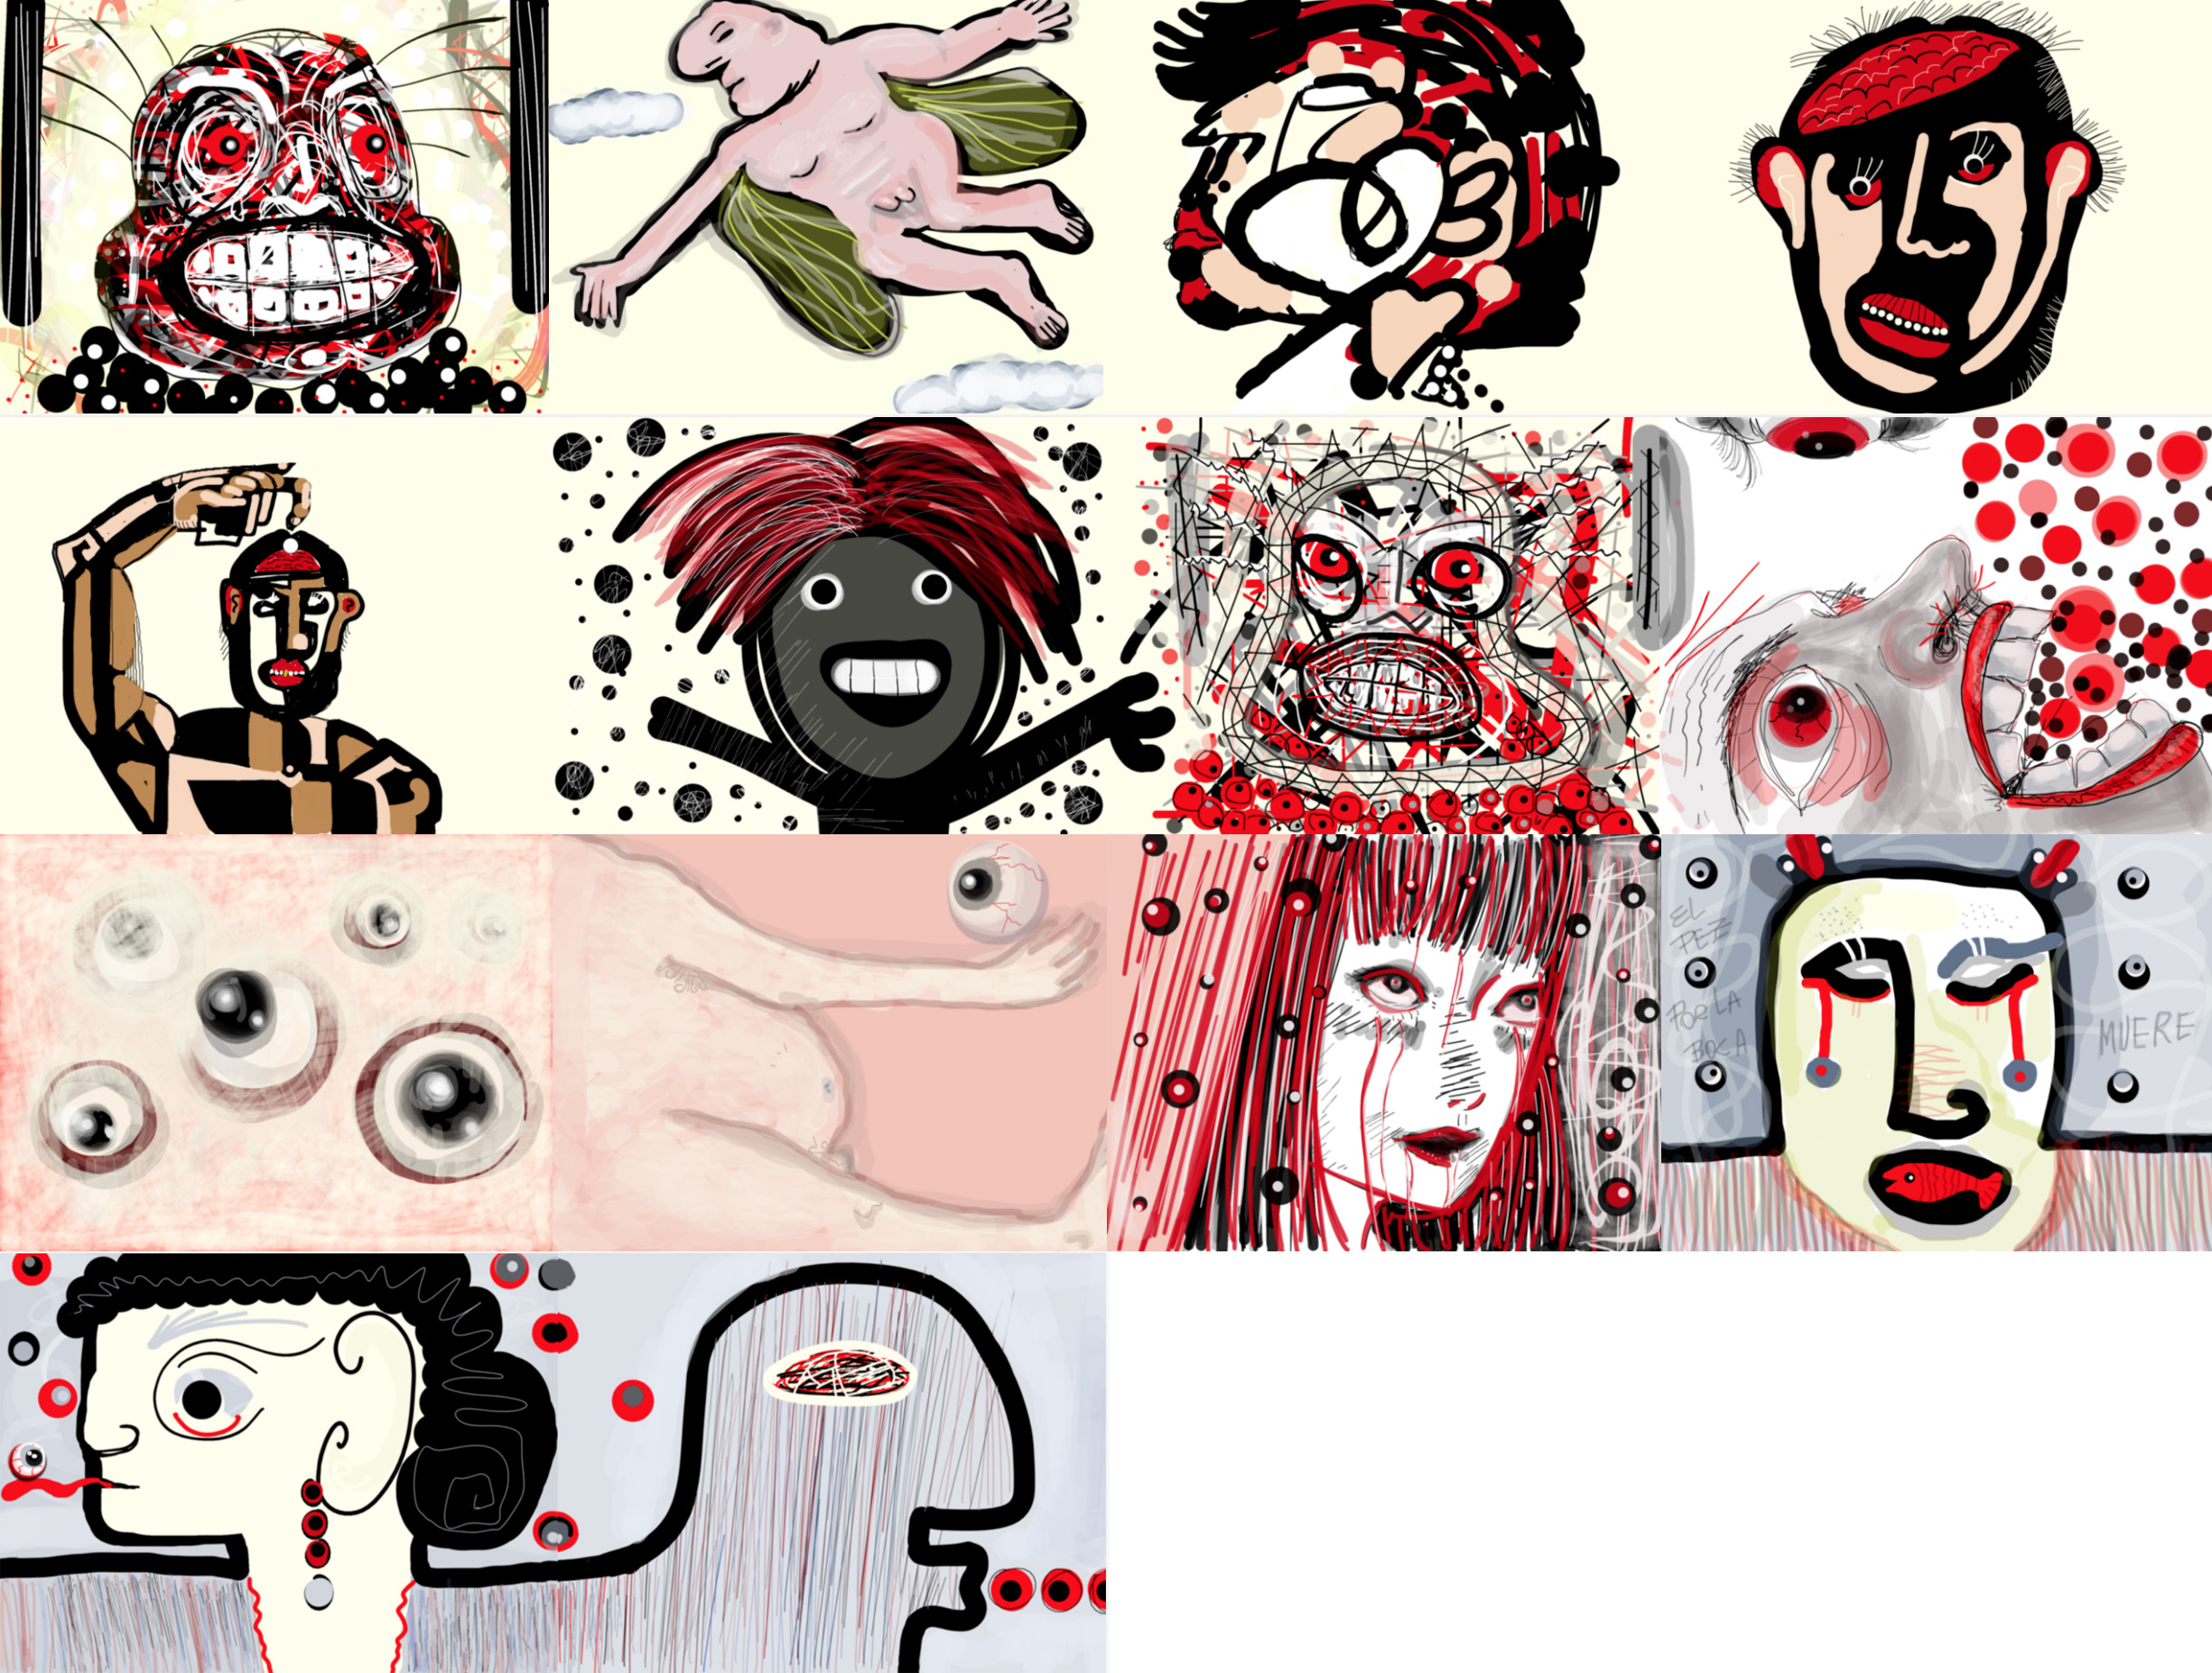 Drawing created by artists from around the world on the Dada platform.